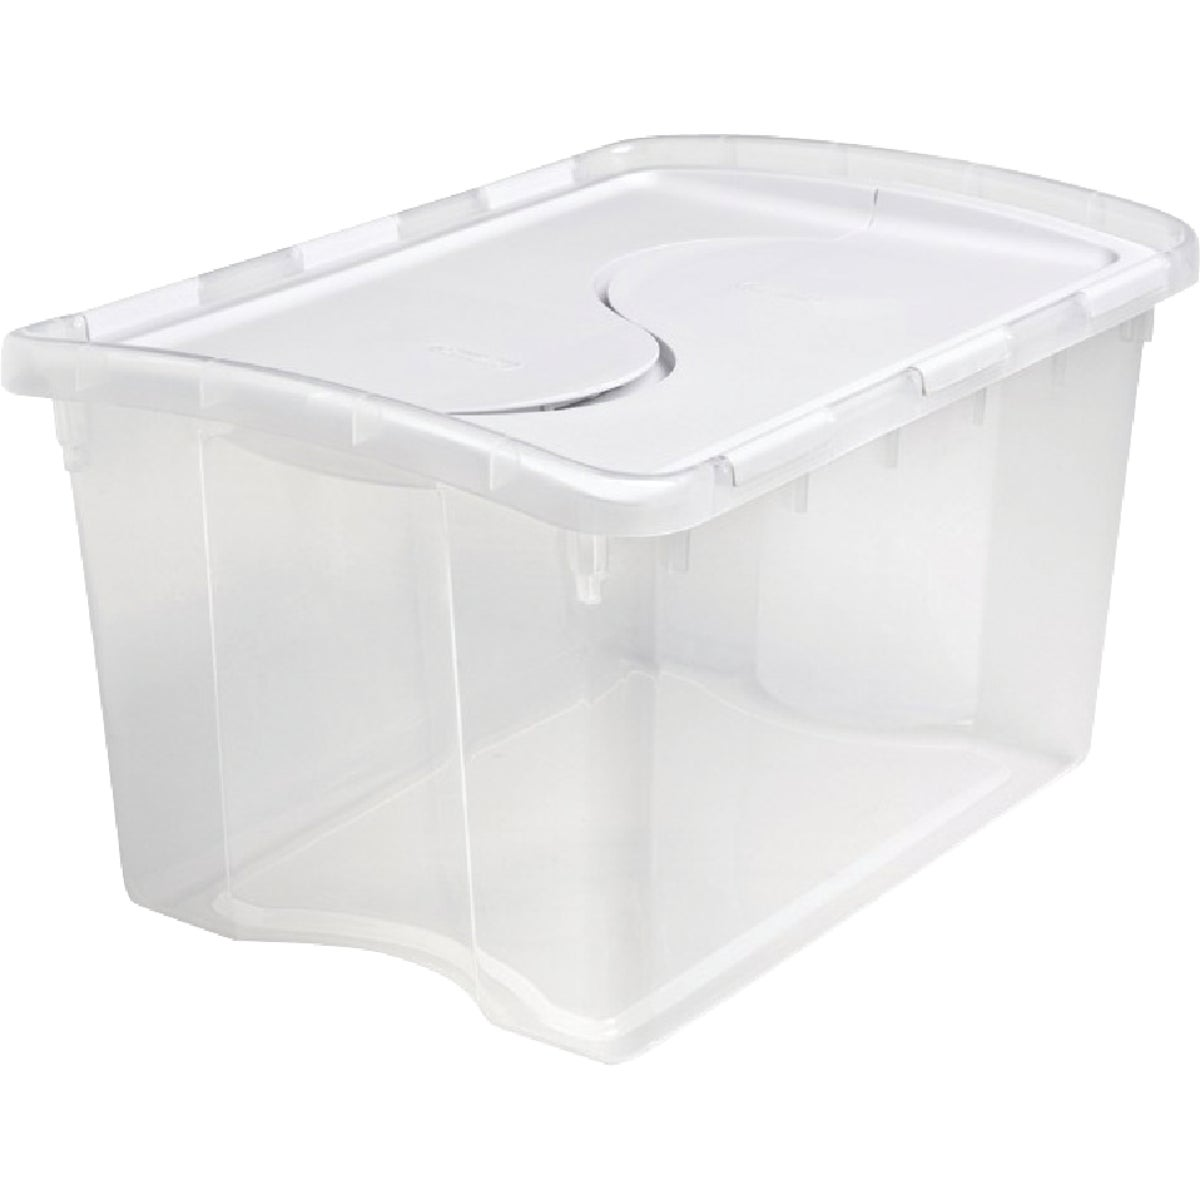 48QT HINGED STORAGE BOX - 19148006 by Sterilite Corp